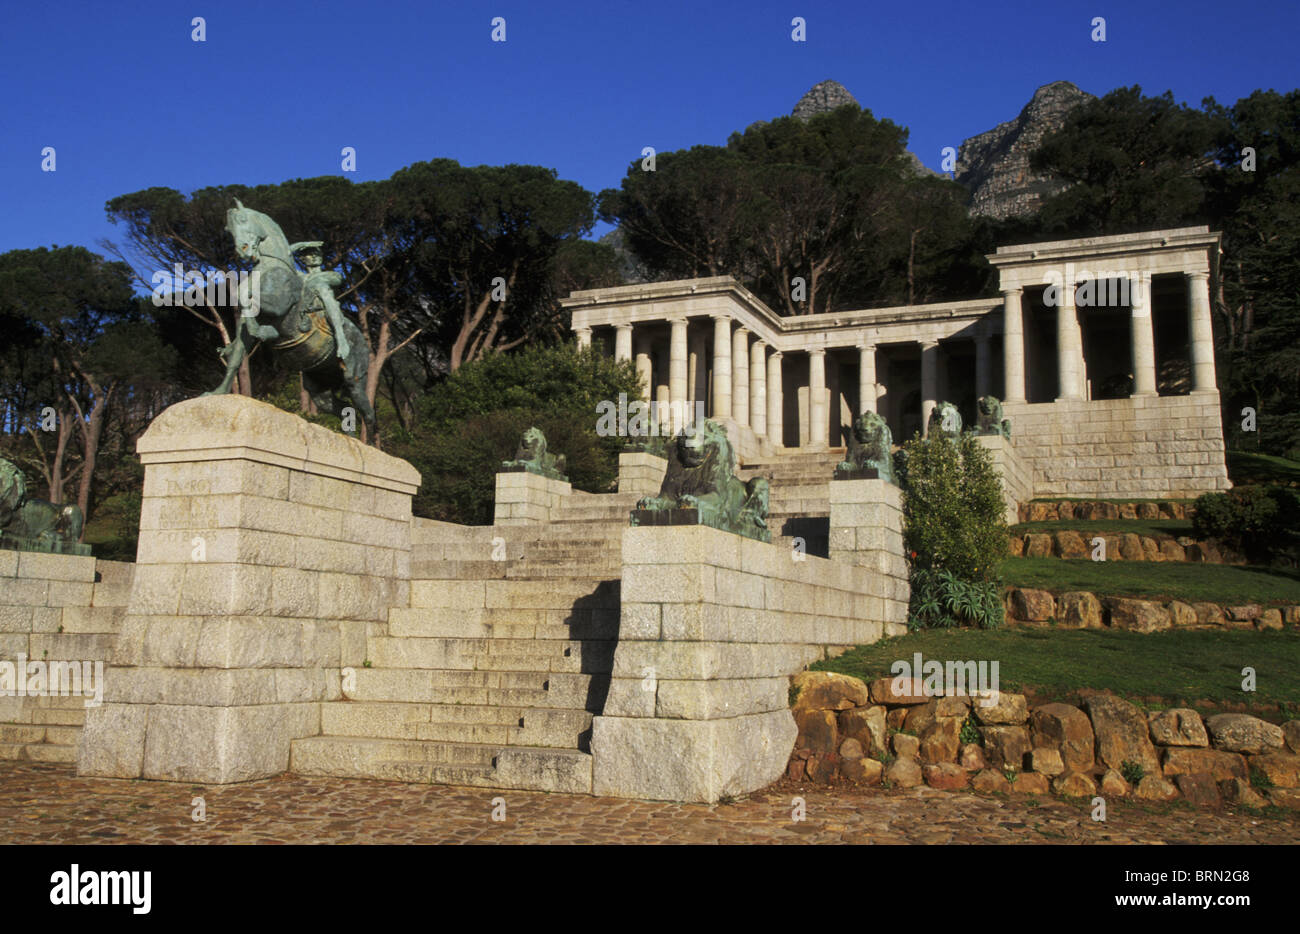 Rhodes Memorial designed by Sir Herbert Baker as a tribute to Cecil John Rhodes - Stock Image